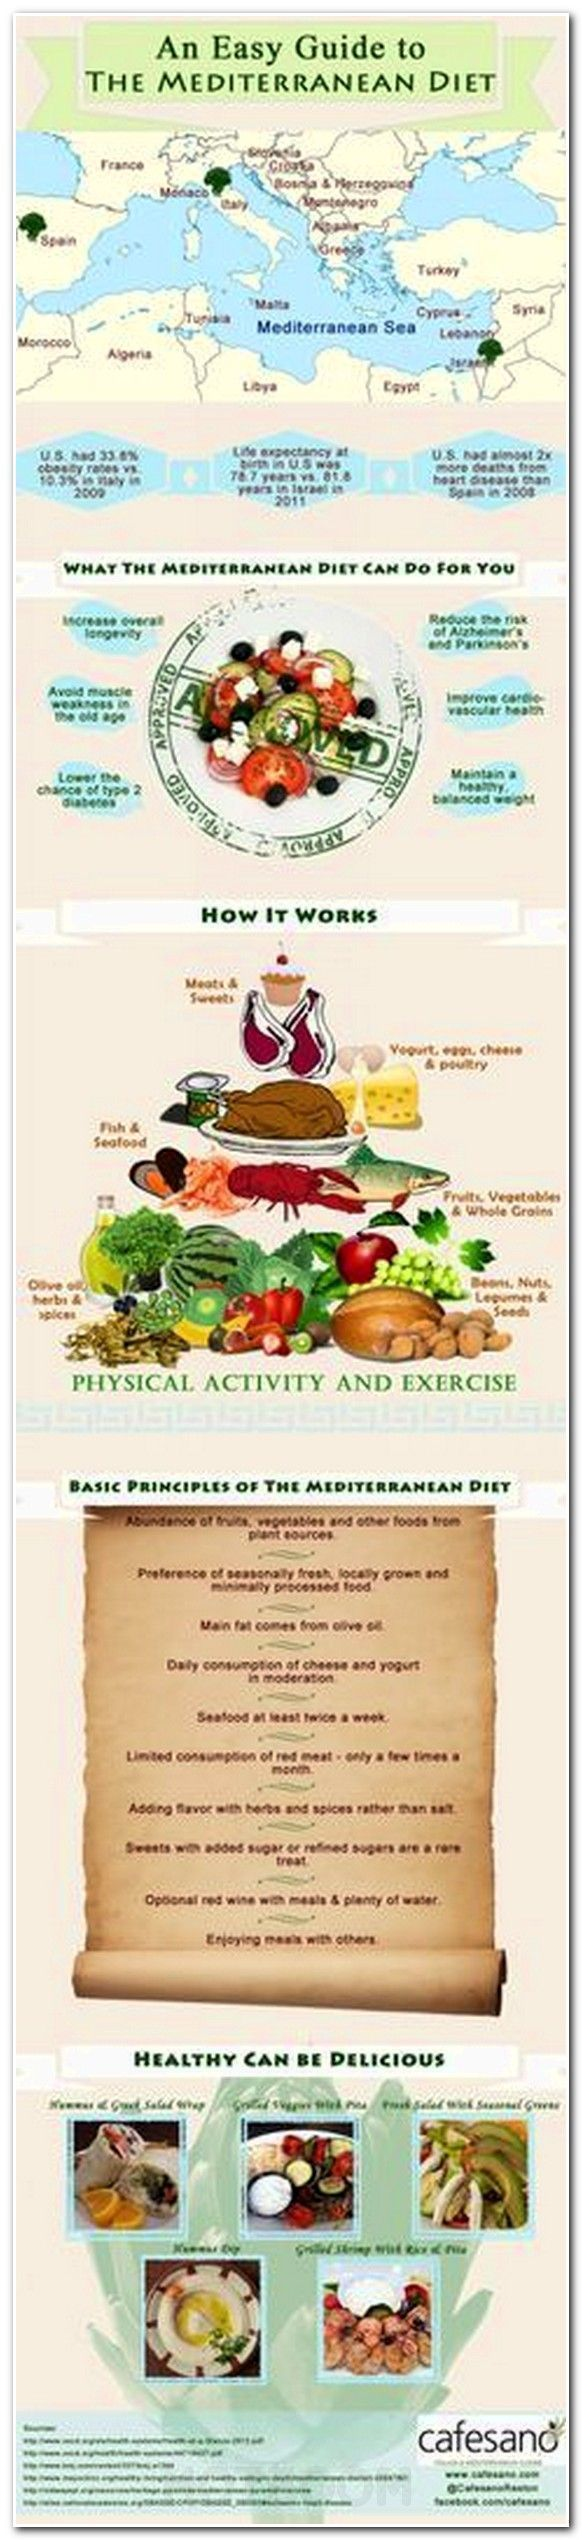 nutrition for diverticulitis, fitness #diet plan female, healthy eating balanced diet, weight loss metabolism, apple cider vinegar fat burner, calorie controlled diet menu, all cabbage diet, best natural fat burning foods, different diet plans, what foods have lots of protein, raw food diet for weight loss, how to lose belly fat fast for women, list of food for diet, best no carbs diet, how to reduce our weight quickly #nutritionforweightlossfatburning #bellyfatburnerfoods